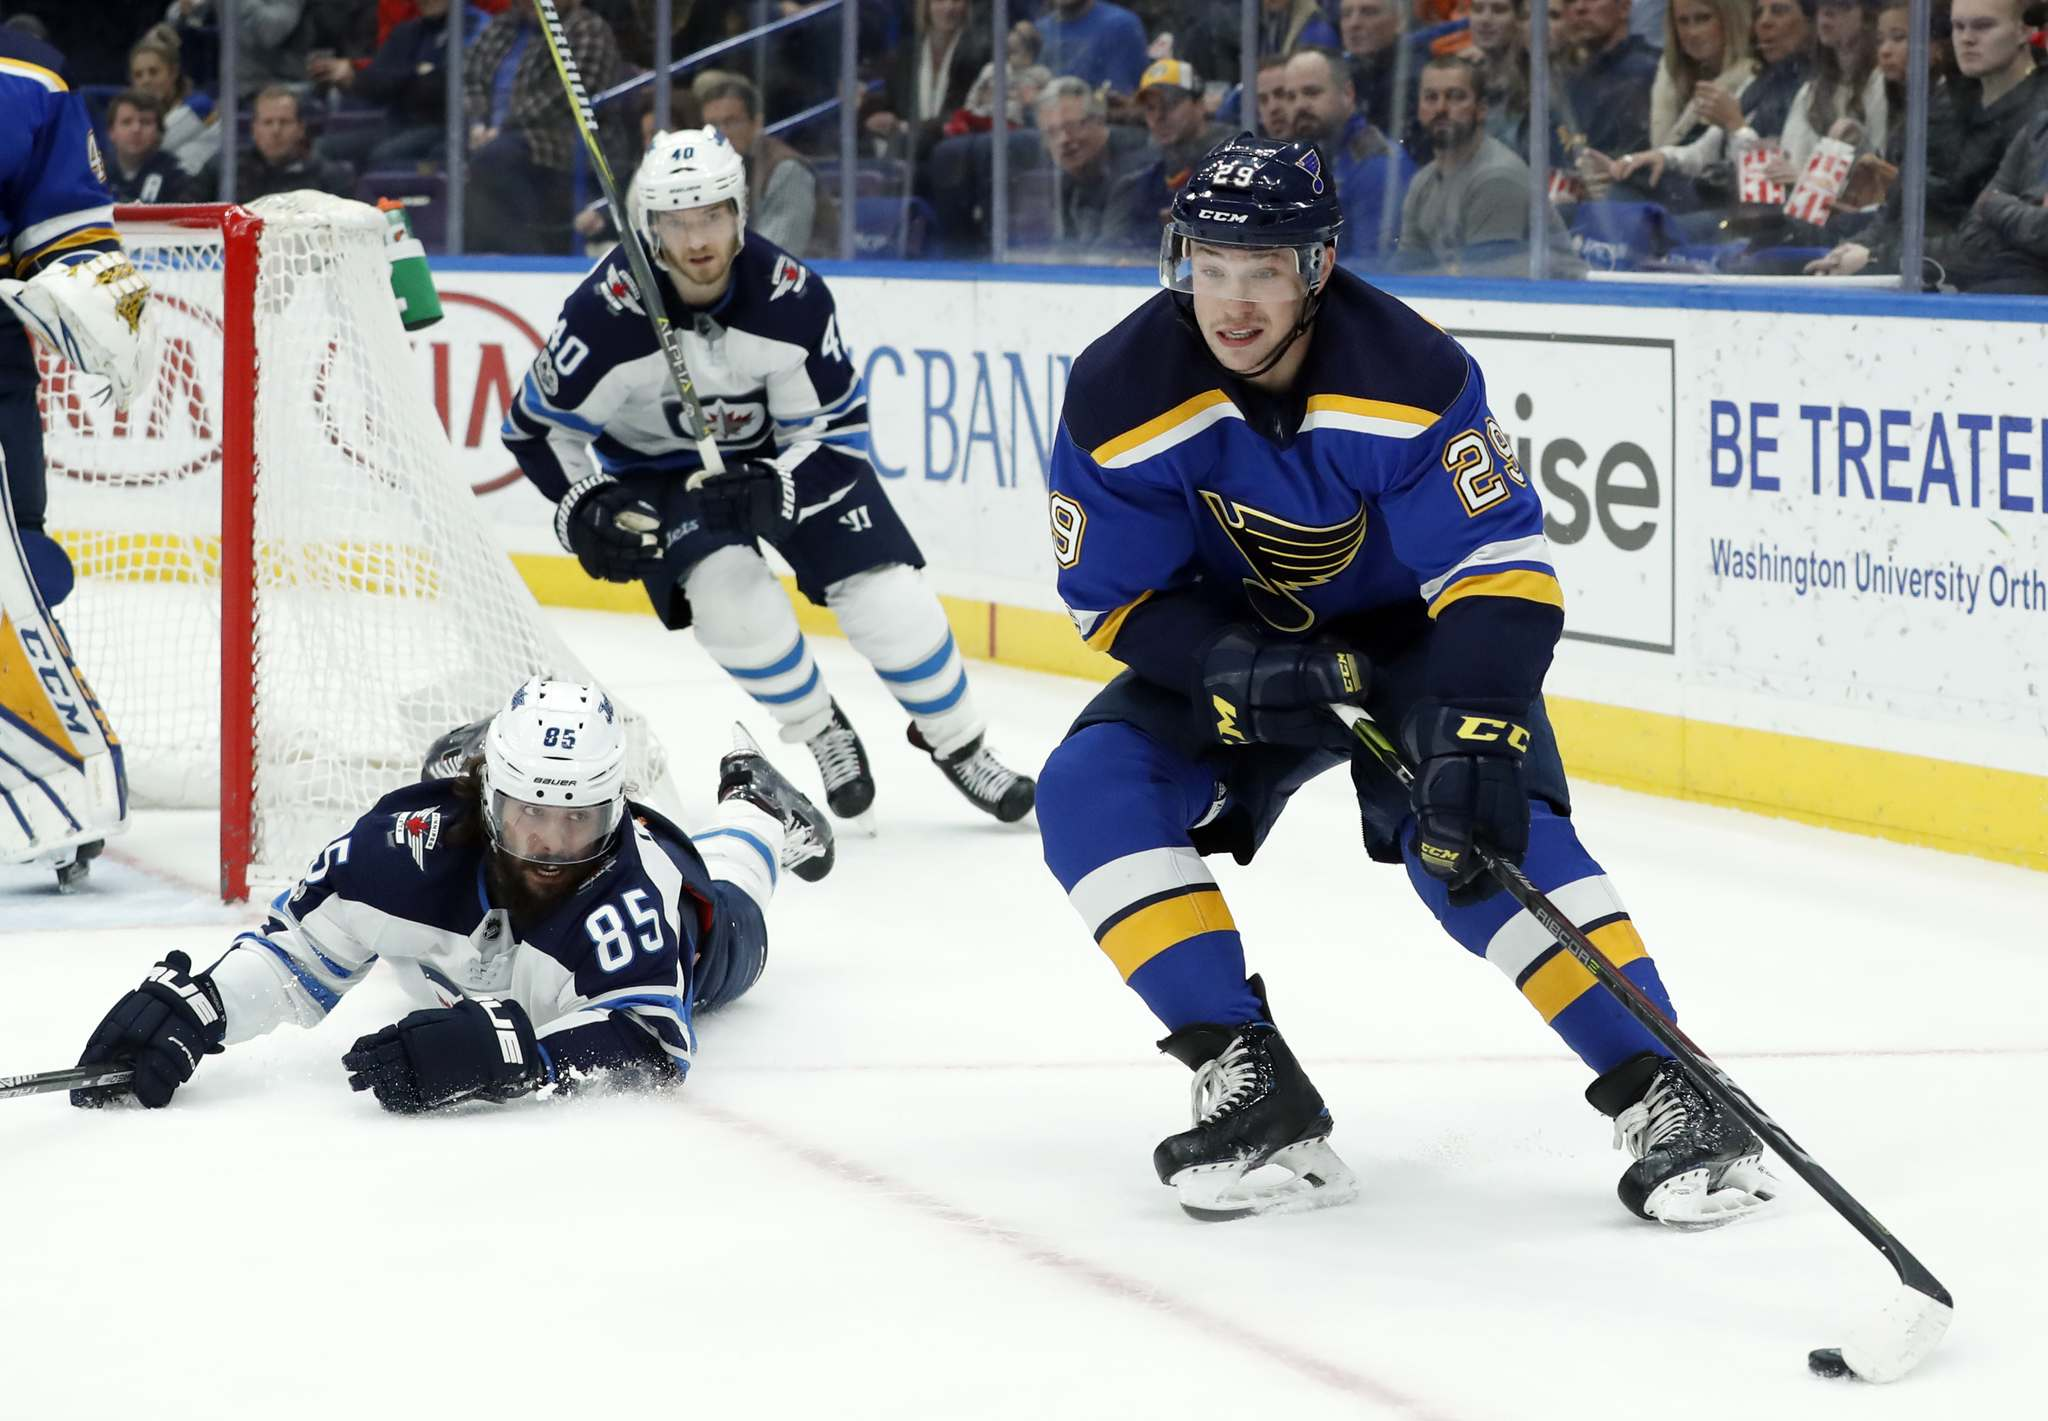 Blues drop second game of back-to-back with Jets